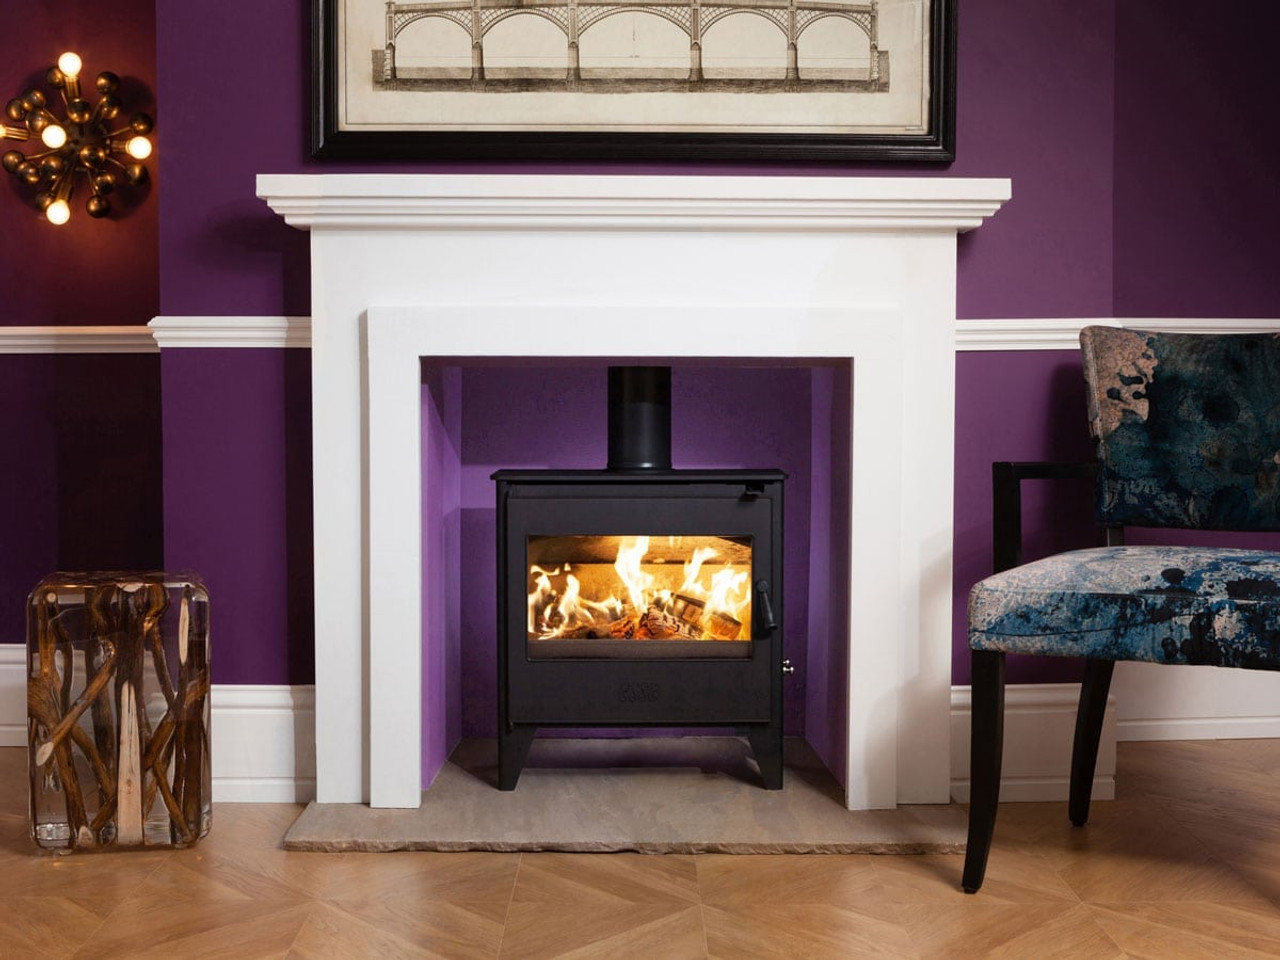 Esse 250 7.5kw Stove - FREE DELIVERY